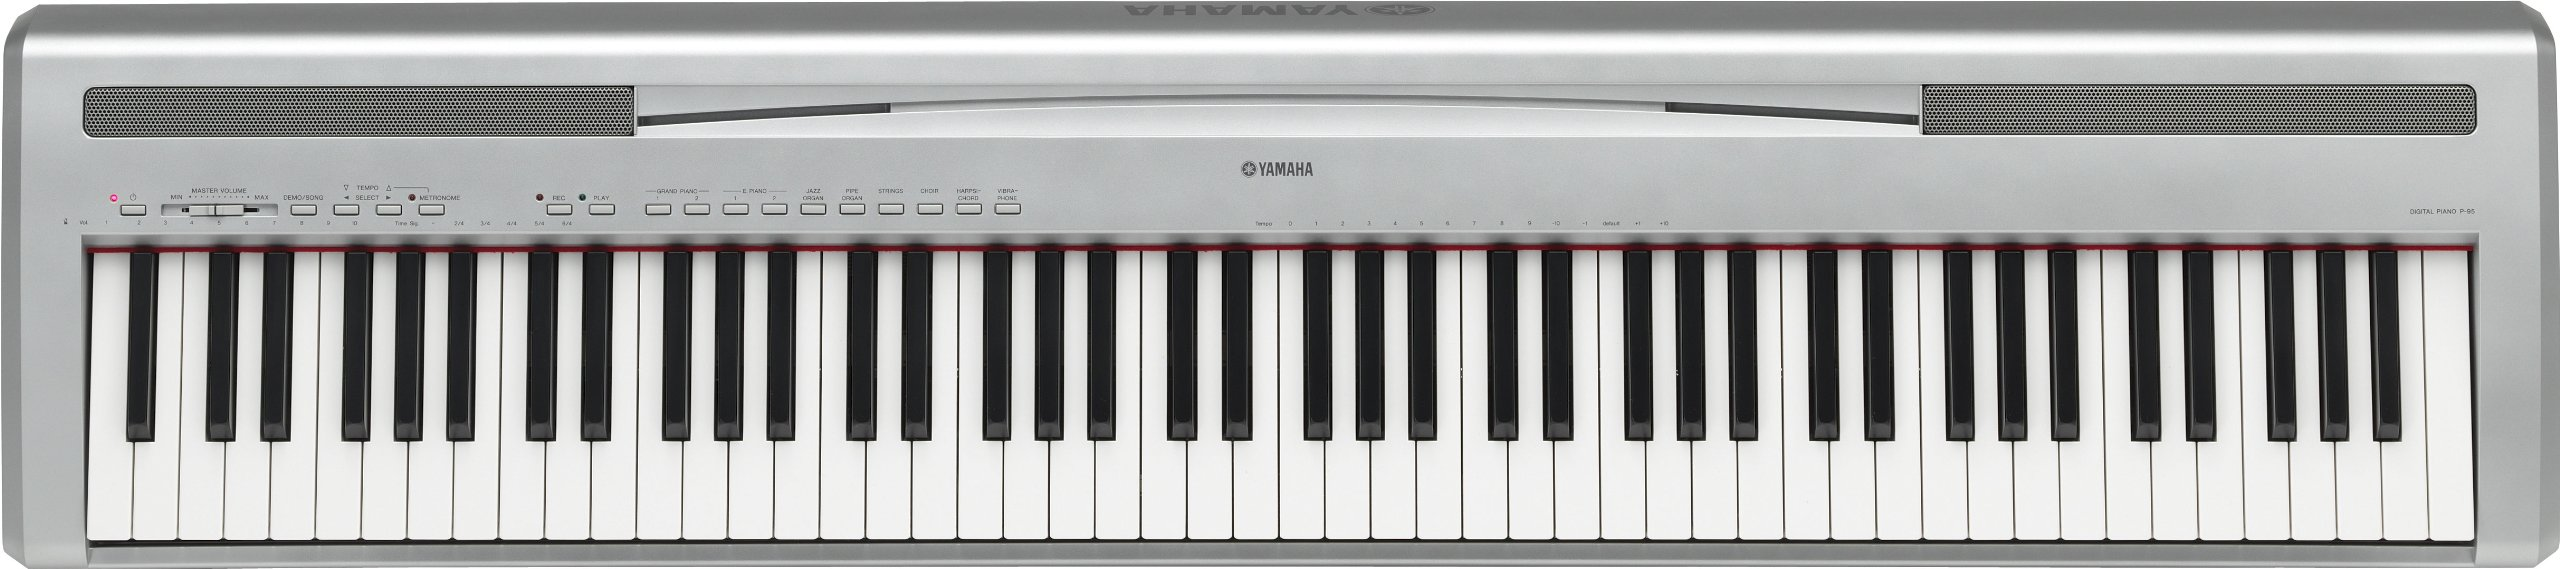 Compare With Yamaha P95